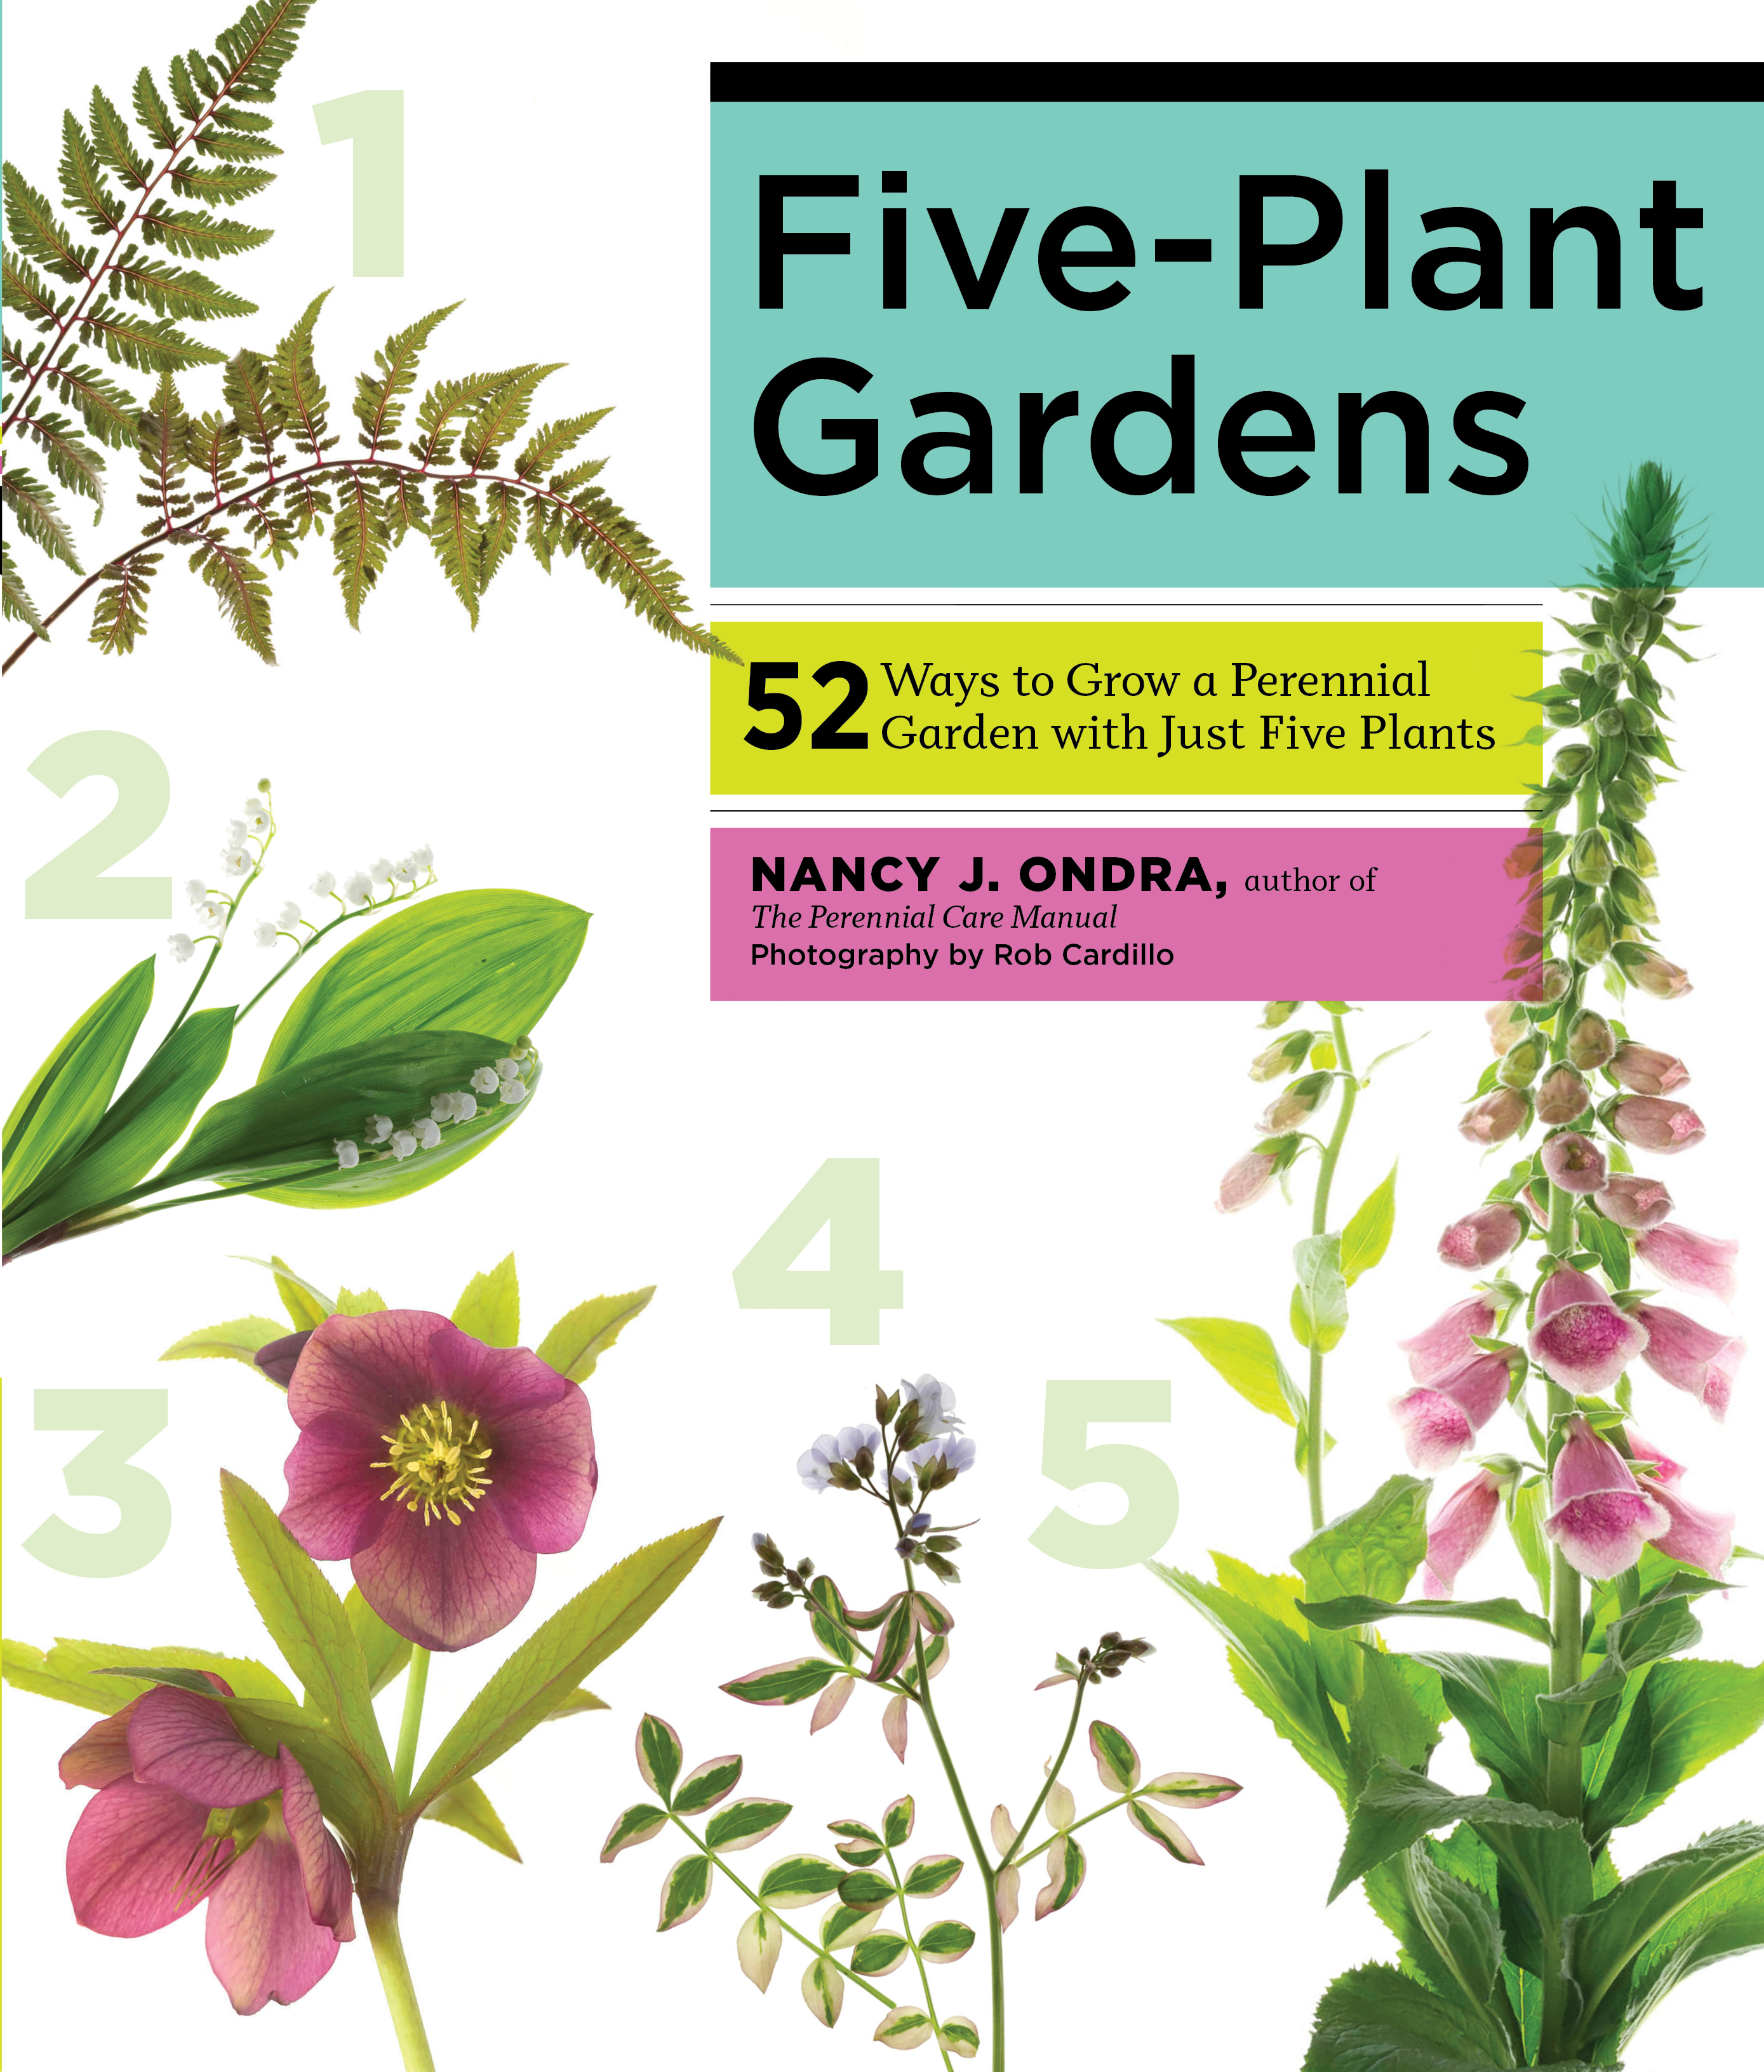 Five-Plant Gardens 52 Ways to Grow a Perennial Garden with Just Five Plants - Nancy J. Ondra